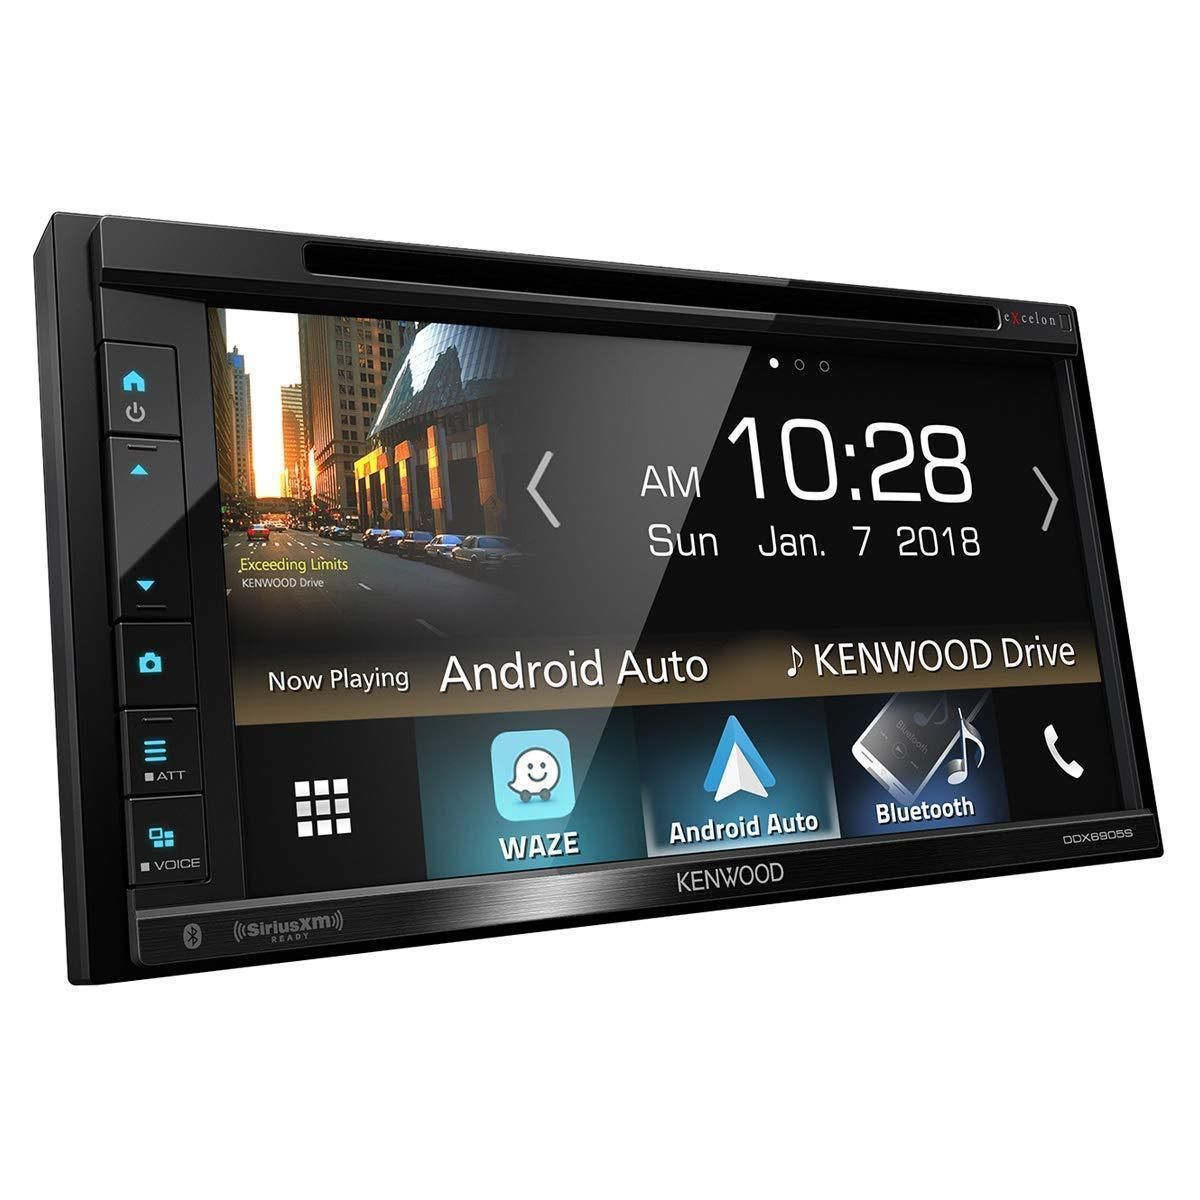 hight resolution of kenwood dnx890hd excelon 6 95 double din navigation dvd receiver by kenwood 1199 00 the dnx890hd features the latest i